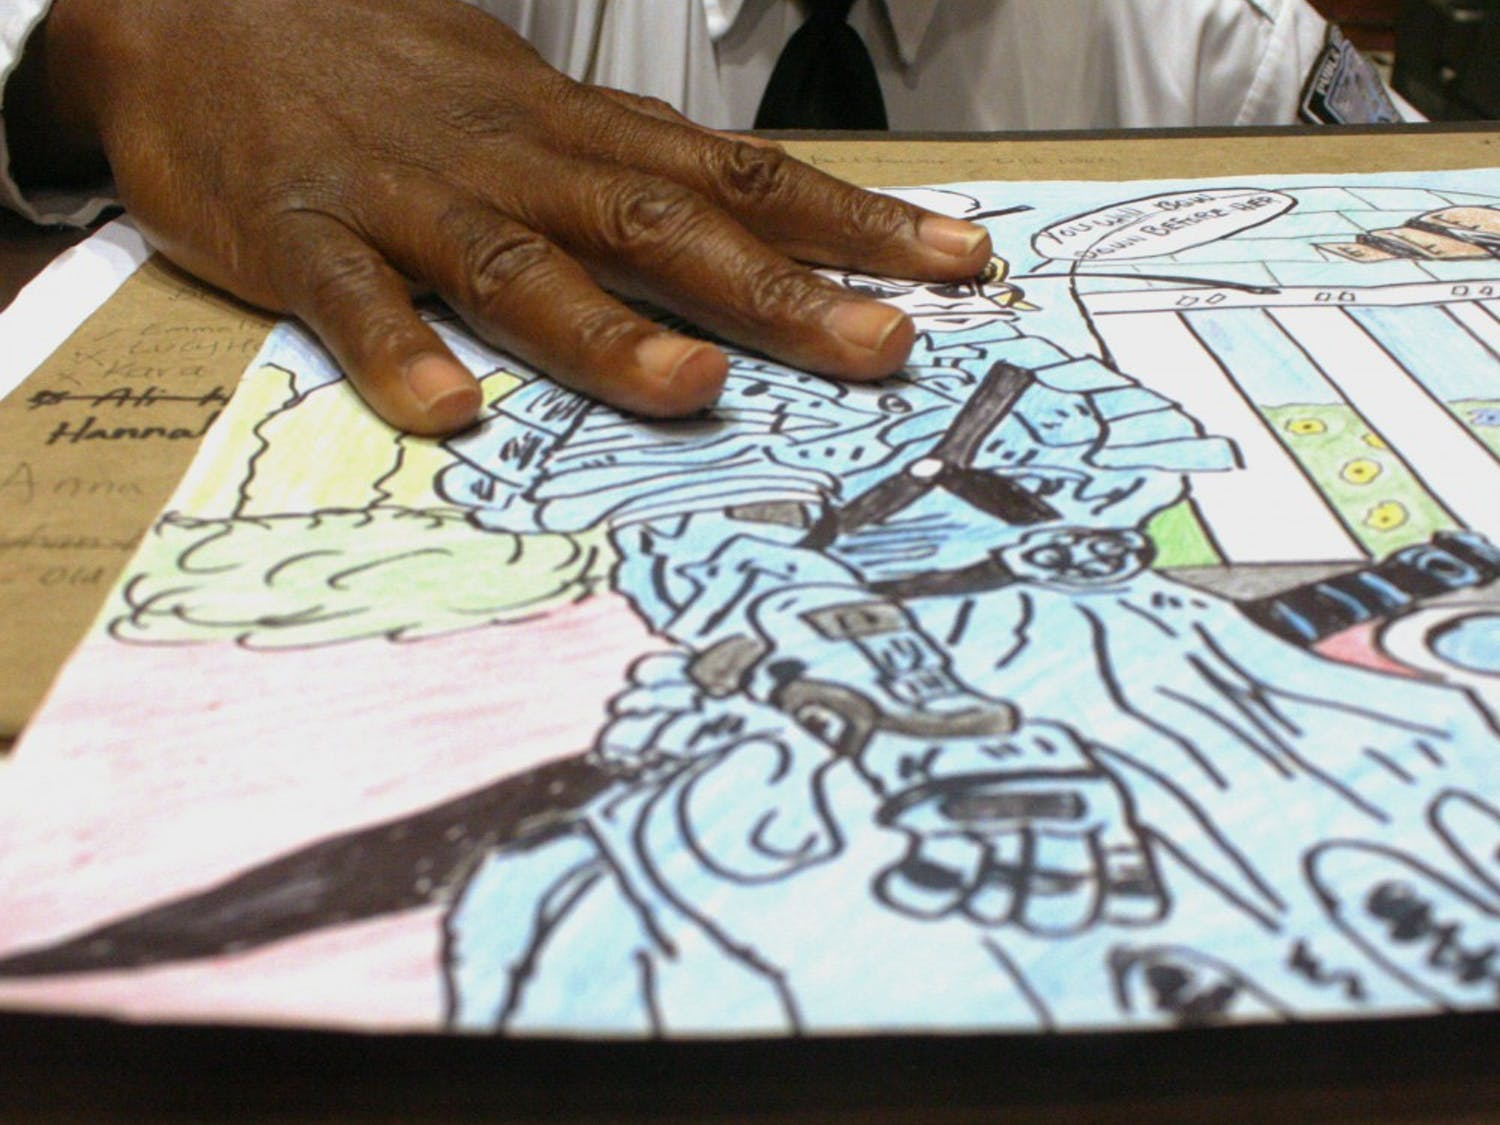 Moore holds a sketch of Rameses, the UNC mascot, wearing a Samurai outfit.